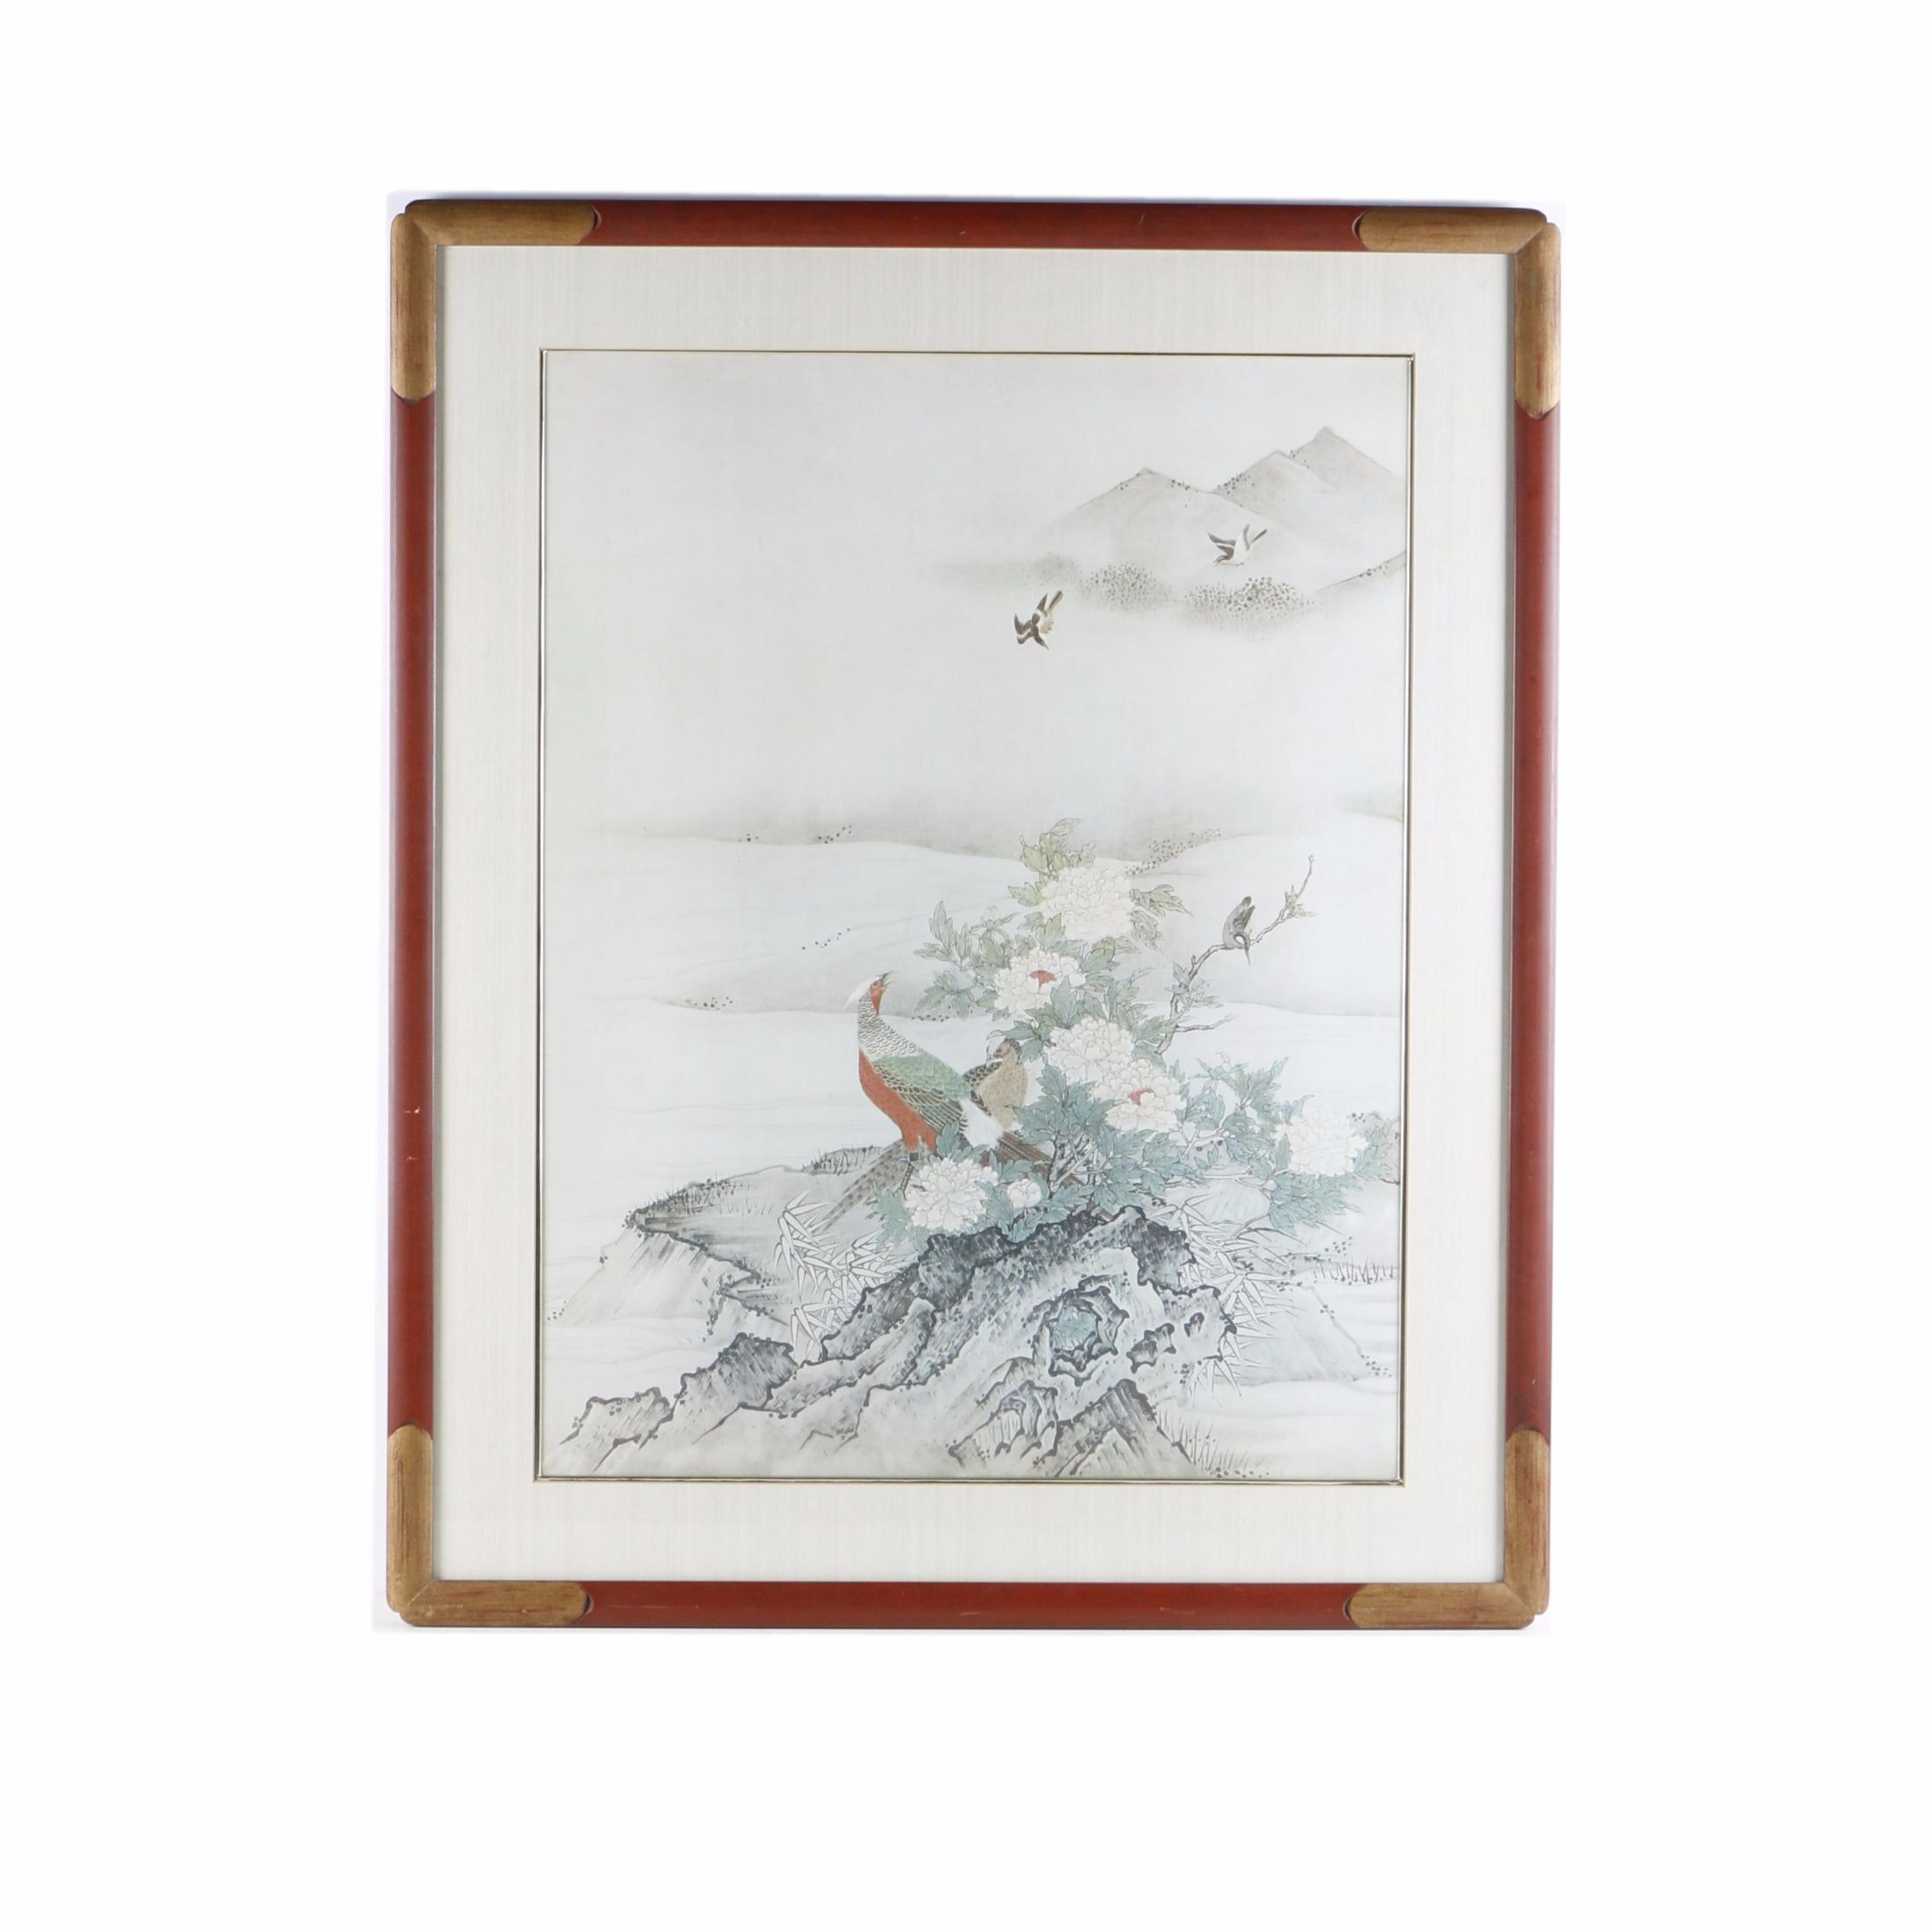 """Giclee Print After Kano Motonobu """"Flowers and Birds in a Spring Landscape"""""""